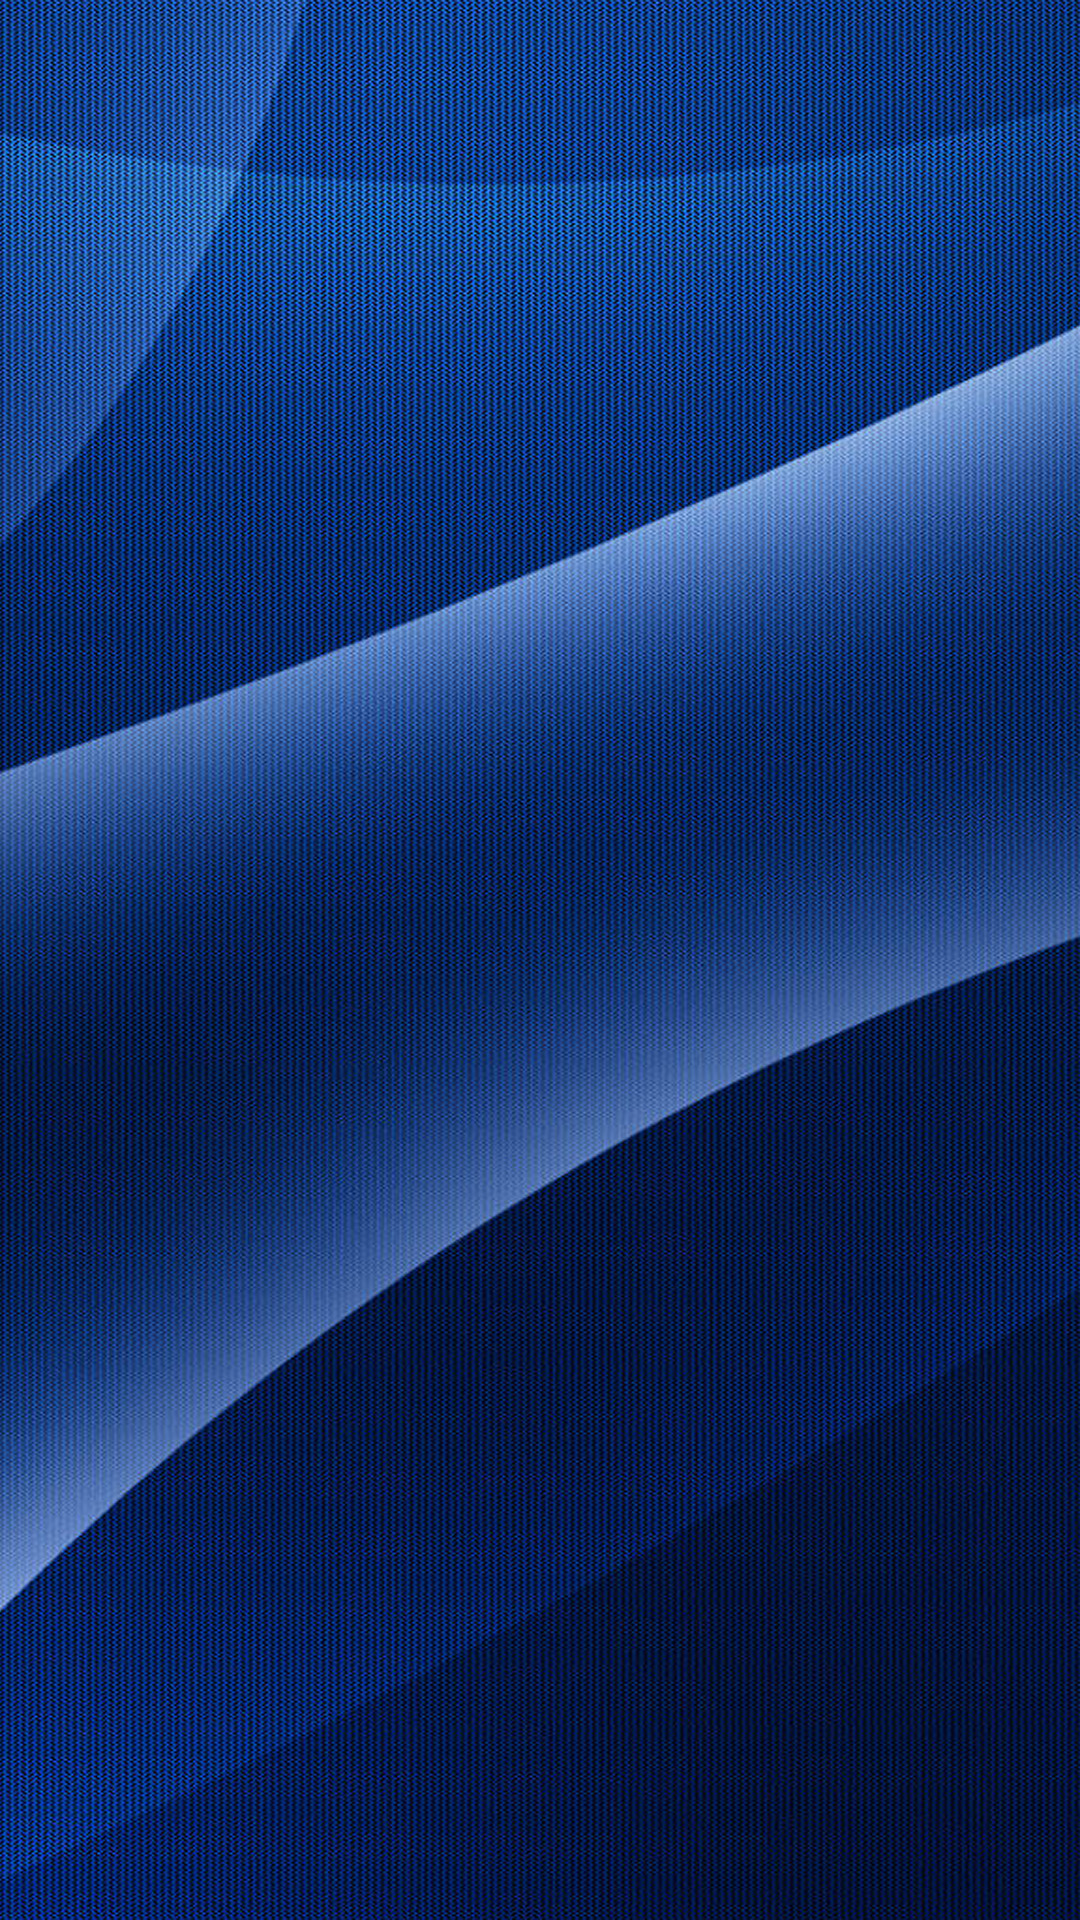 fabric Samsung Galaxy S5 Wallpapers Samsung Galaxy S5 Wallpapers 1080x1920